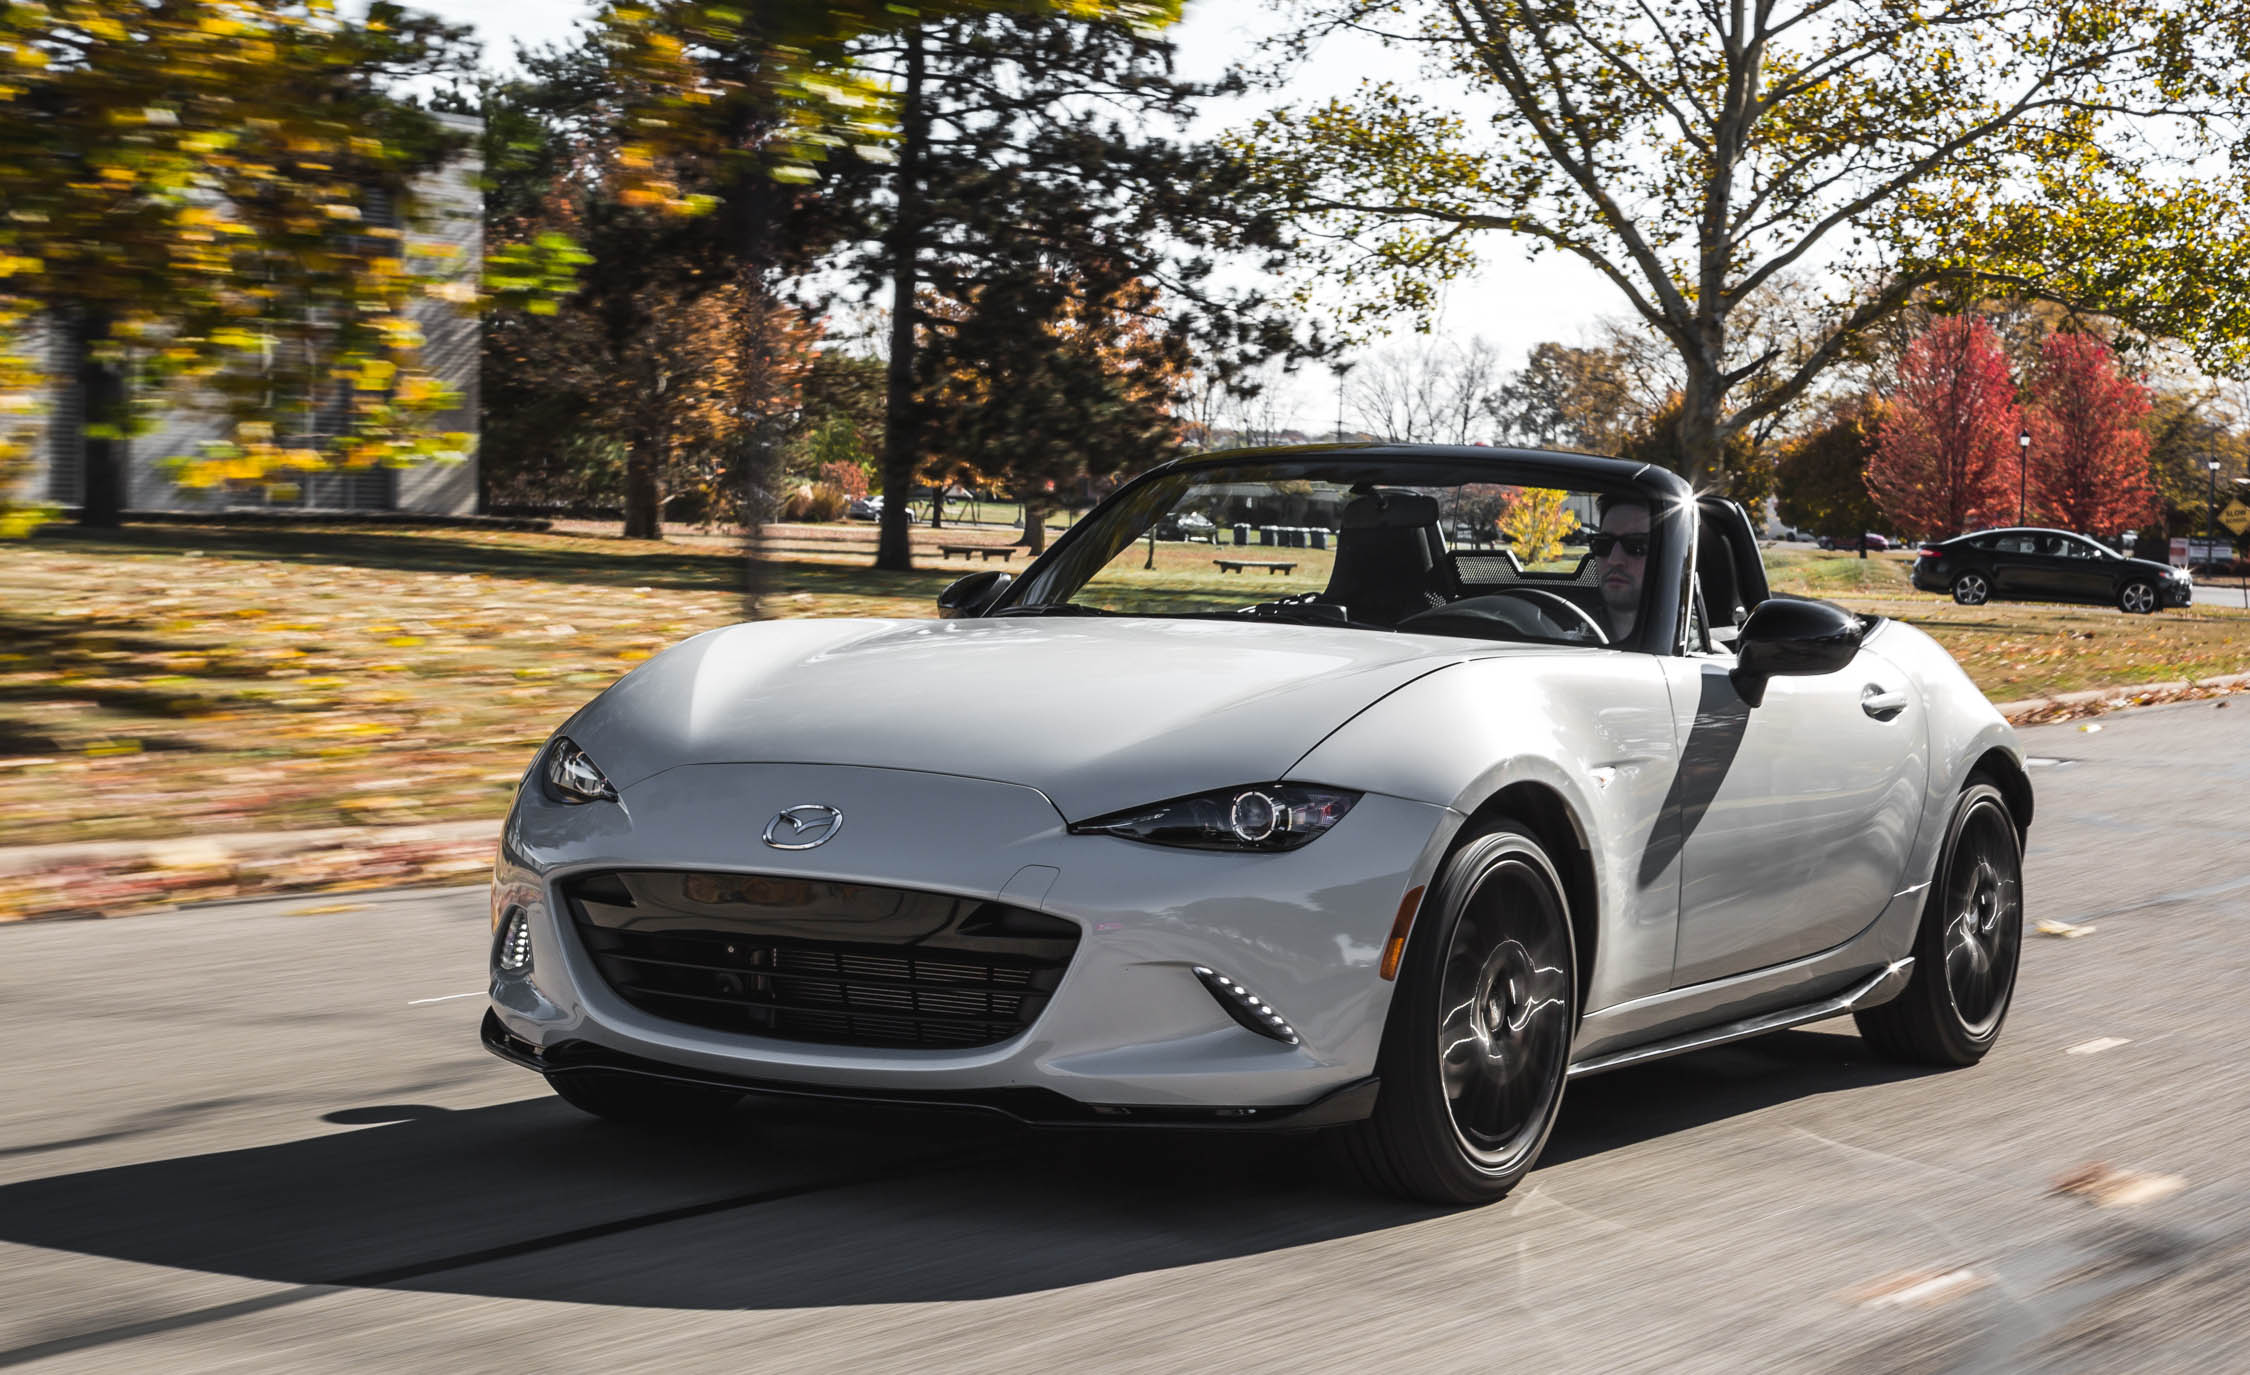 New 2016 Mazda MX-5 Miata Test Drive